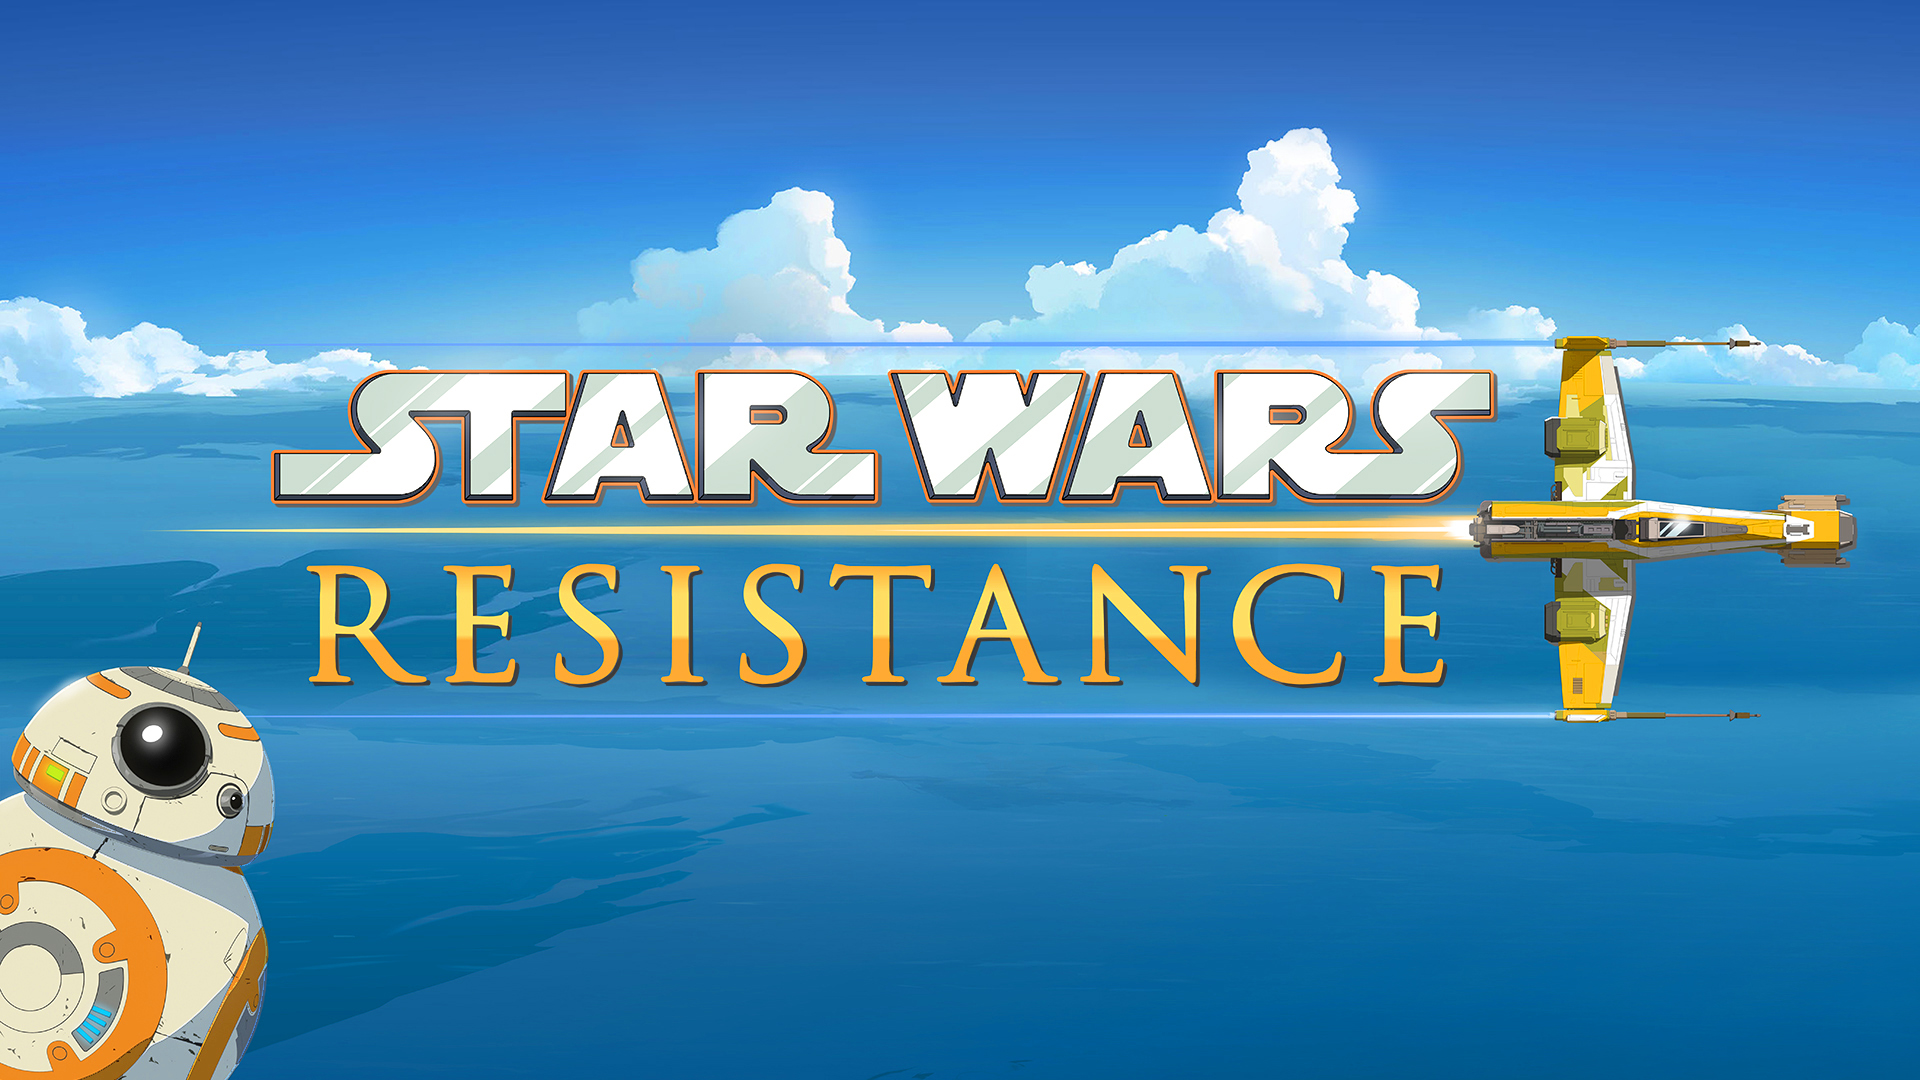 'Star Wars Resistance' - First Look Trailer